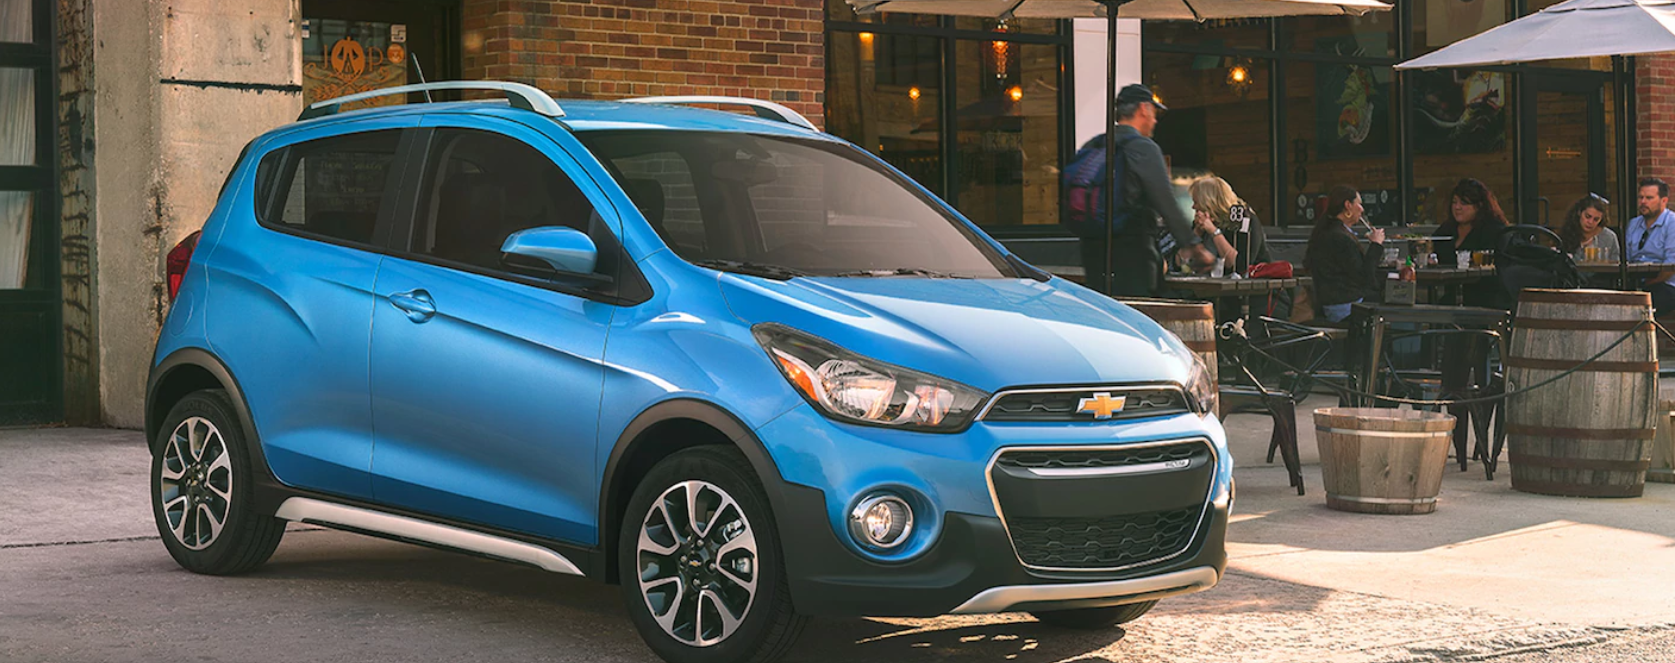 Champion Chevrolet Howell >> 2018 Chevrolet Spark | Champion Chevrolet of Howell